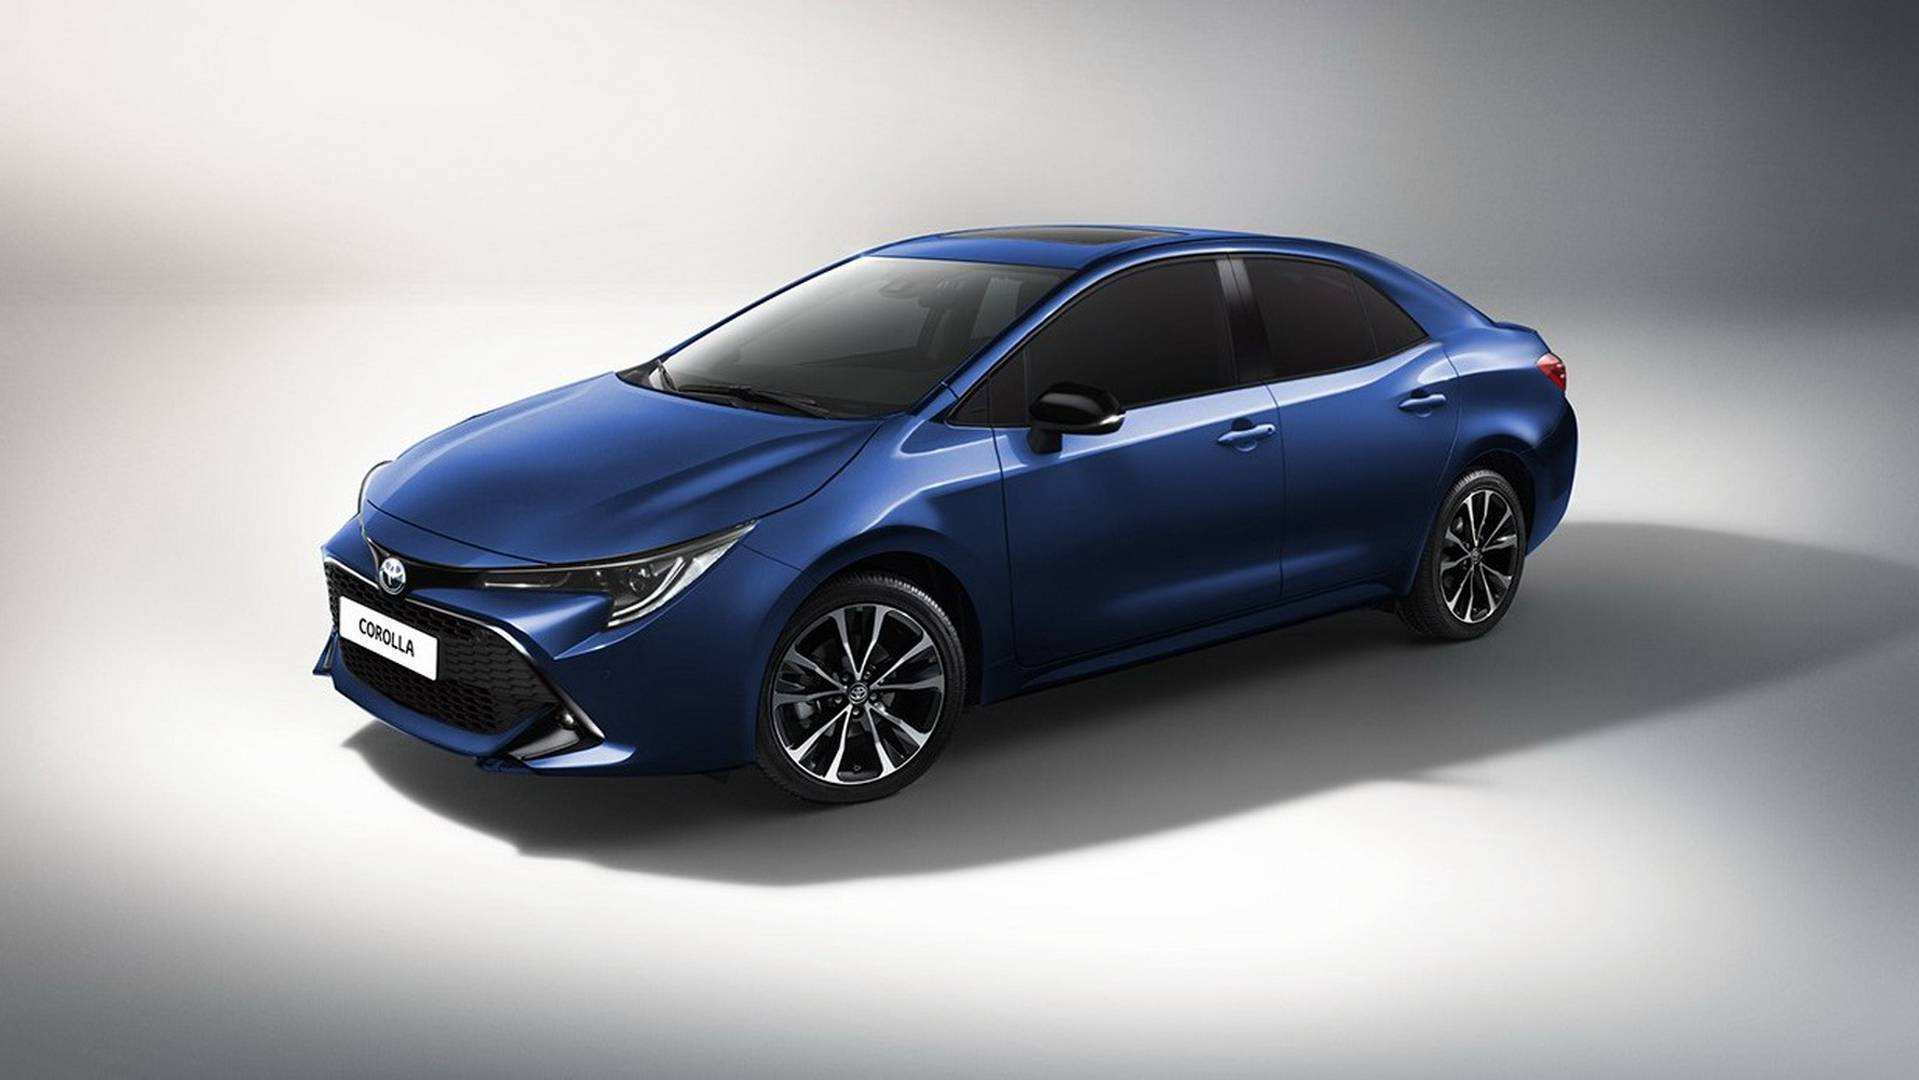 46 The Best 2020 Toyota Avensis Redesign